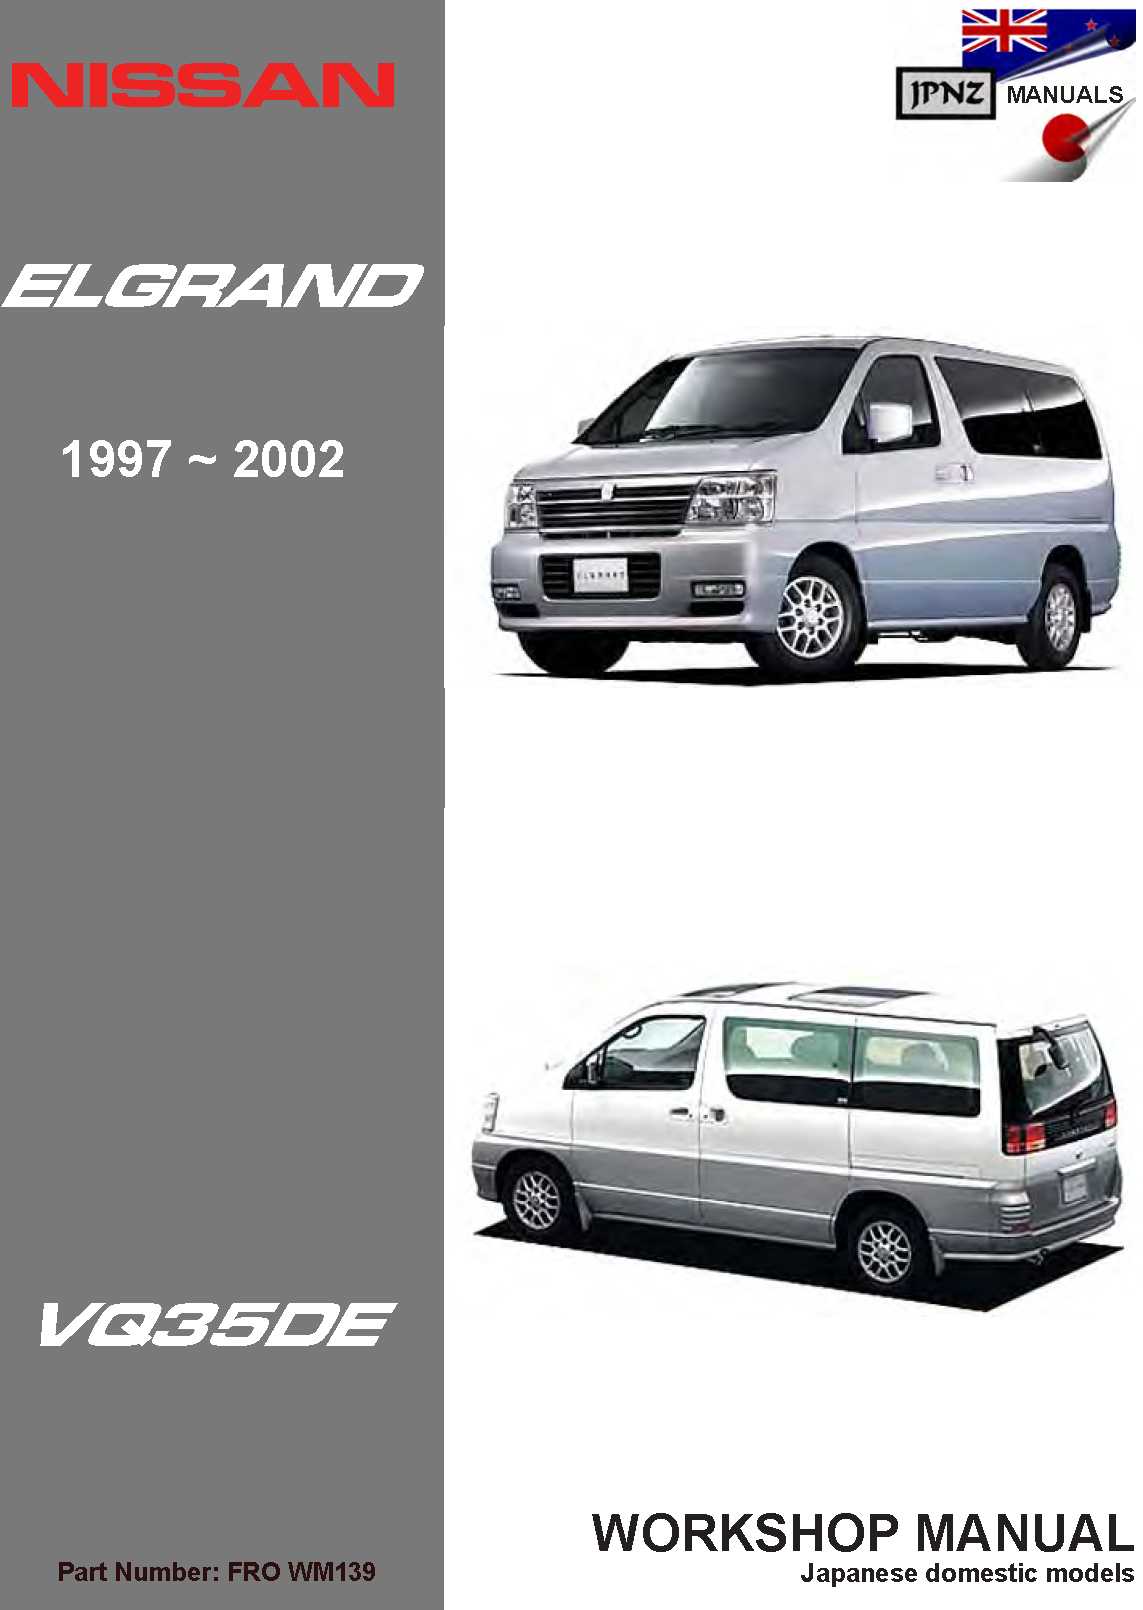 nissan elgrand e50 workshop service manual 1997 2002 rh jpnz co nz Nissan Repair Guide Nissan Pathfinder Repair Manual